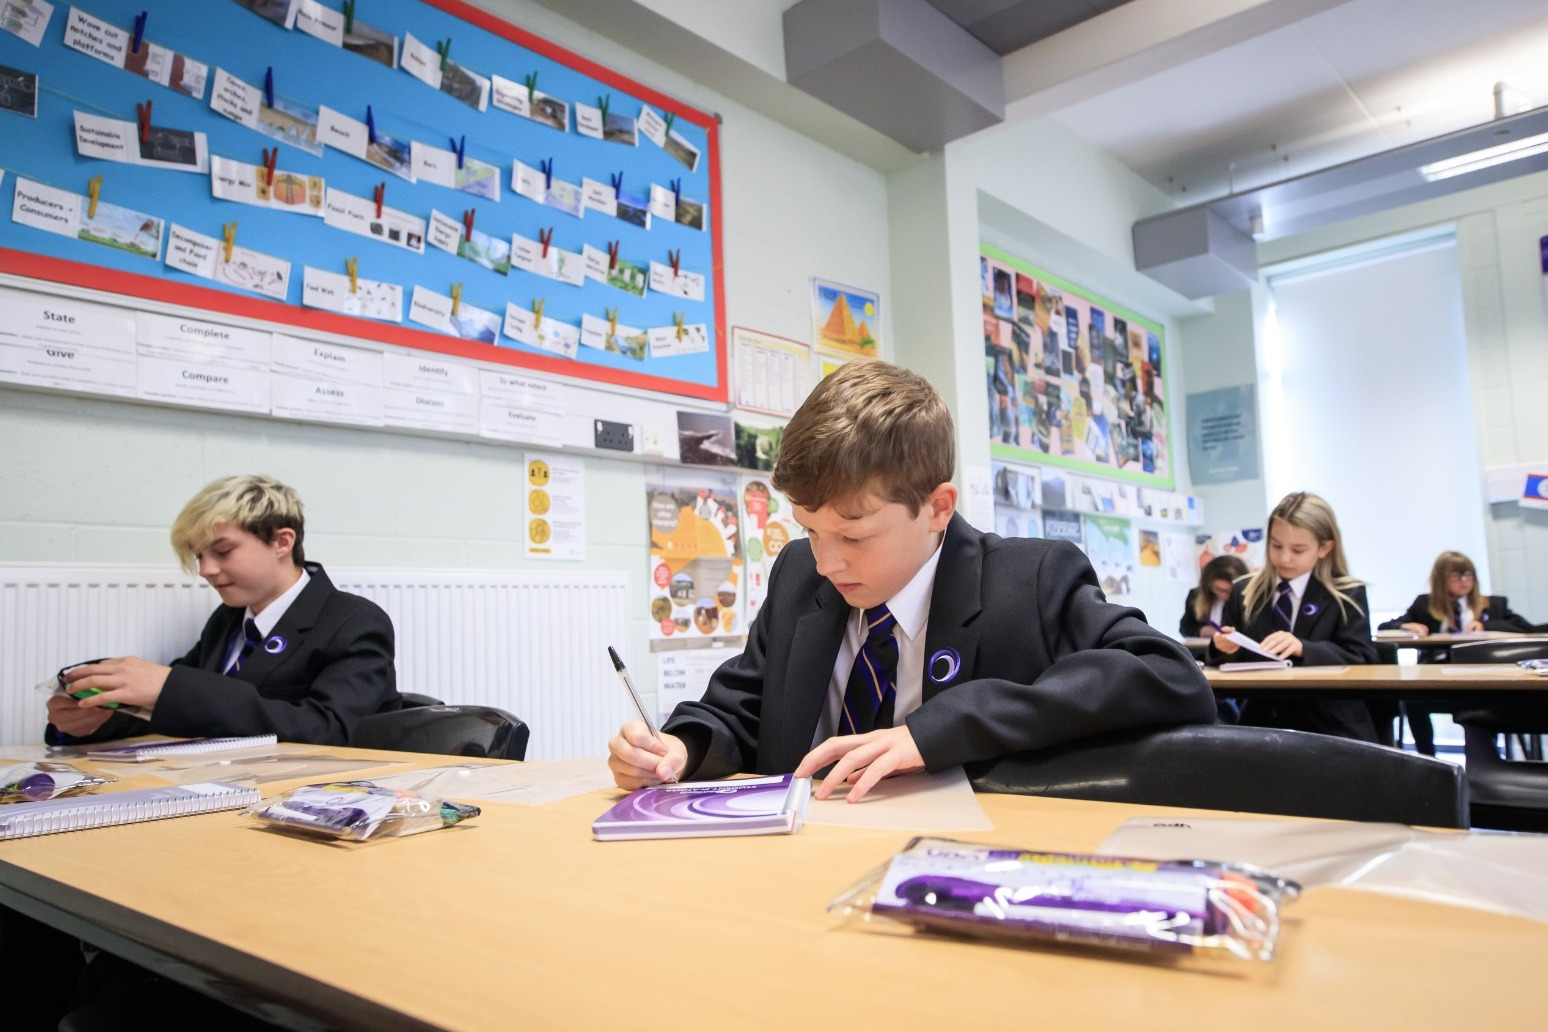 PM to prioritise schools and socialising in road map out of lockdown